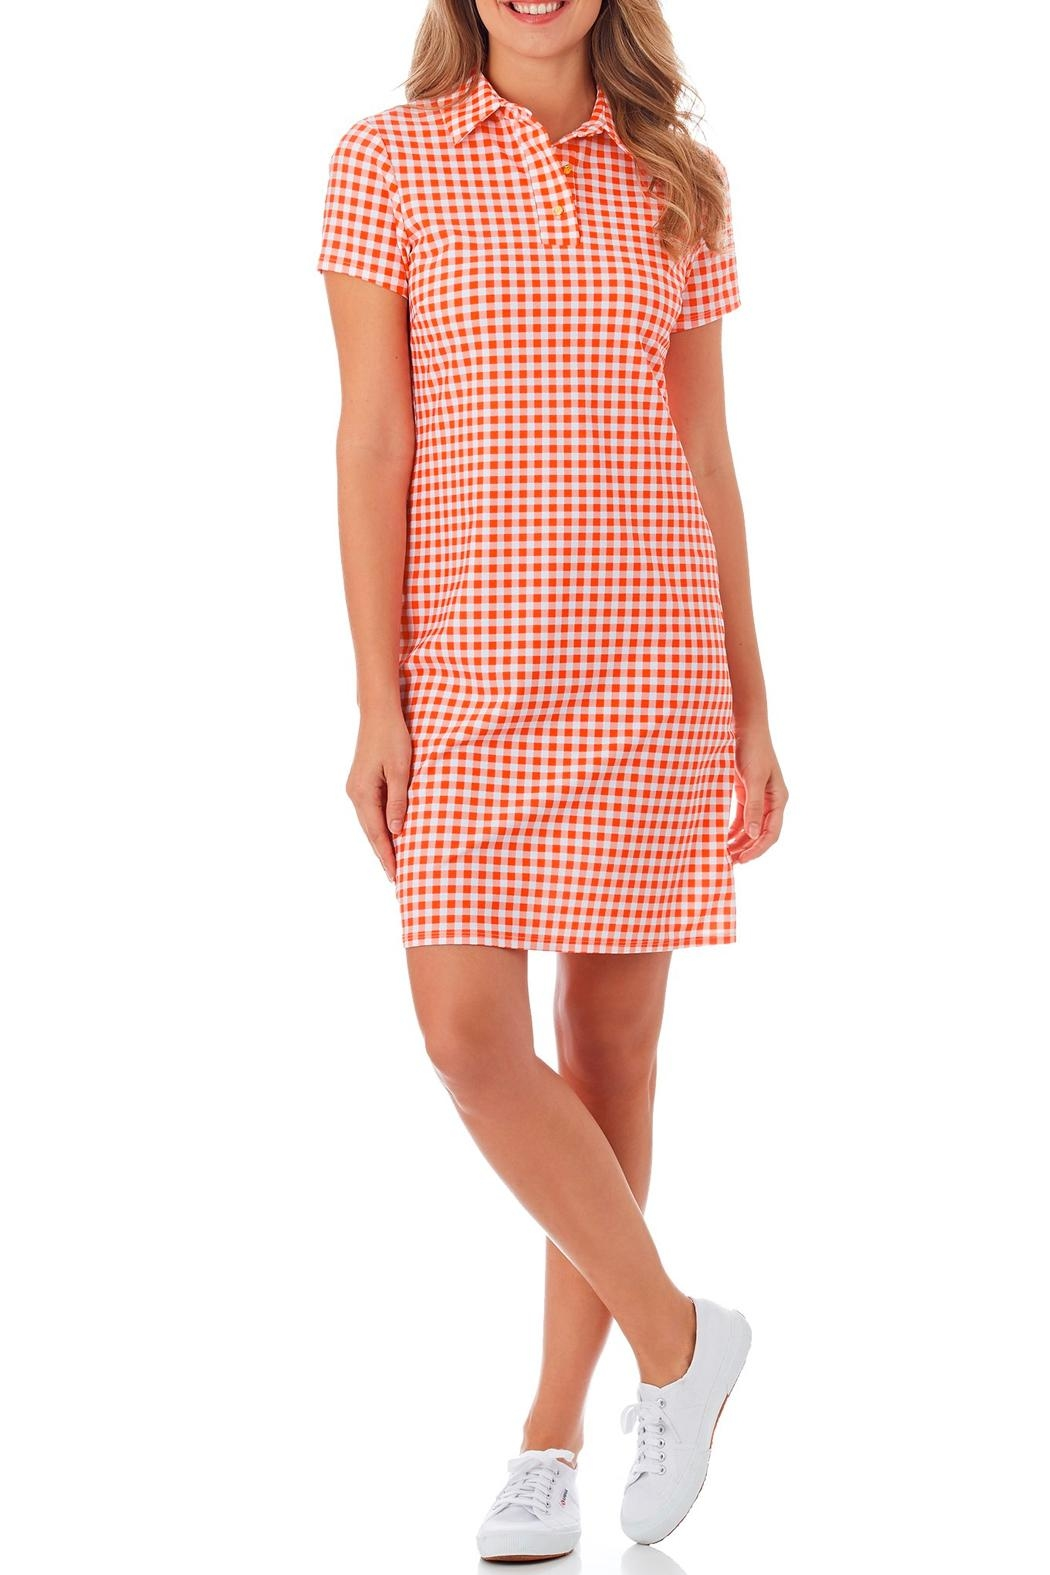 Jude Connally Emily Polo Dress - Front Cropped Image